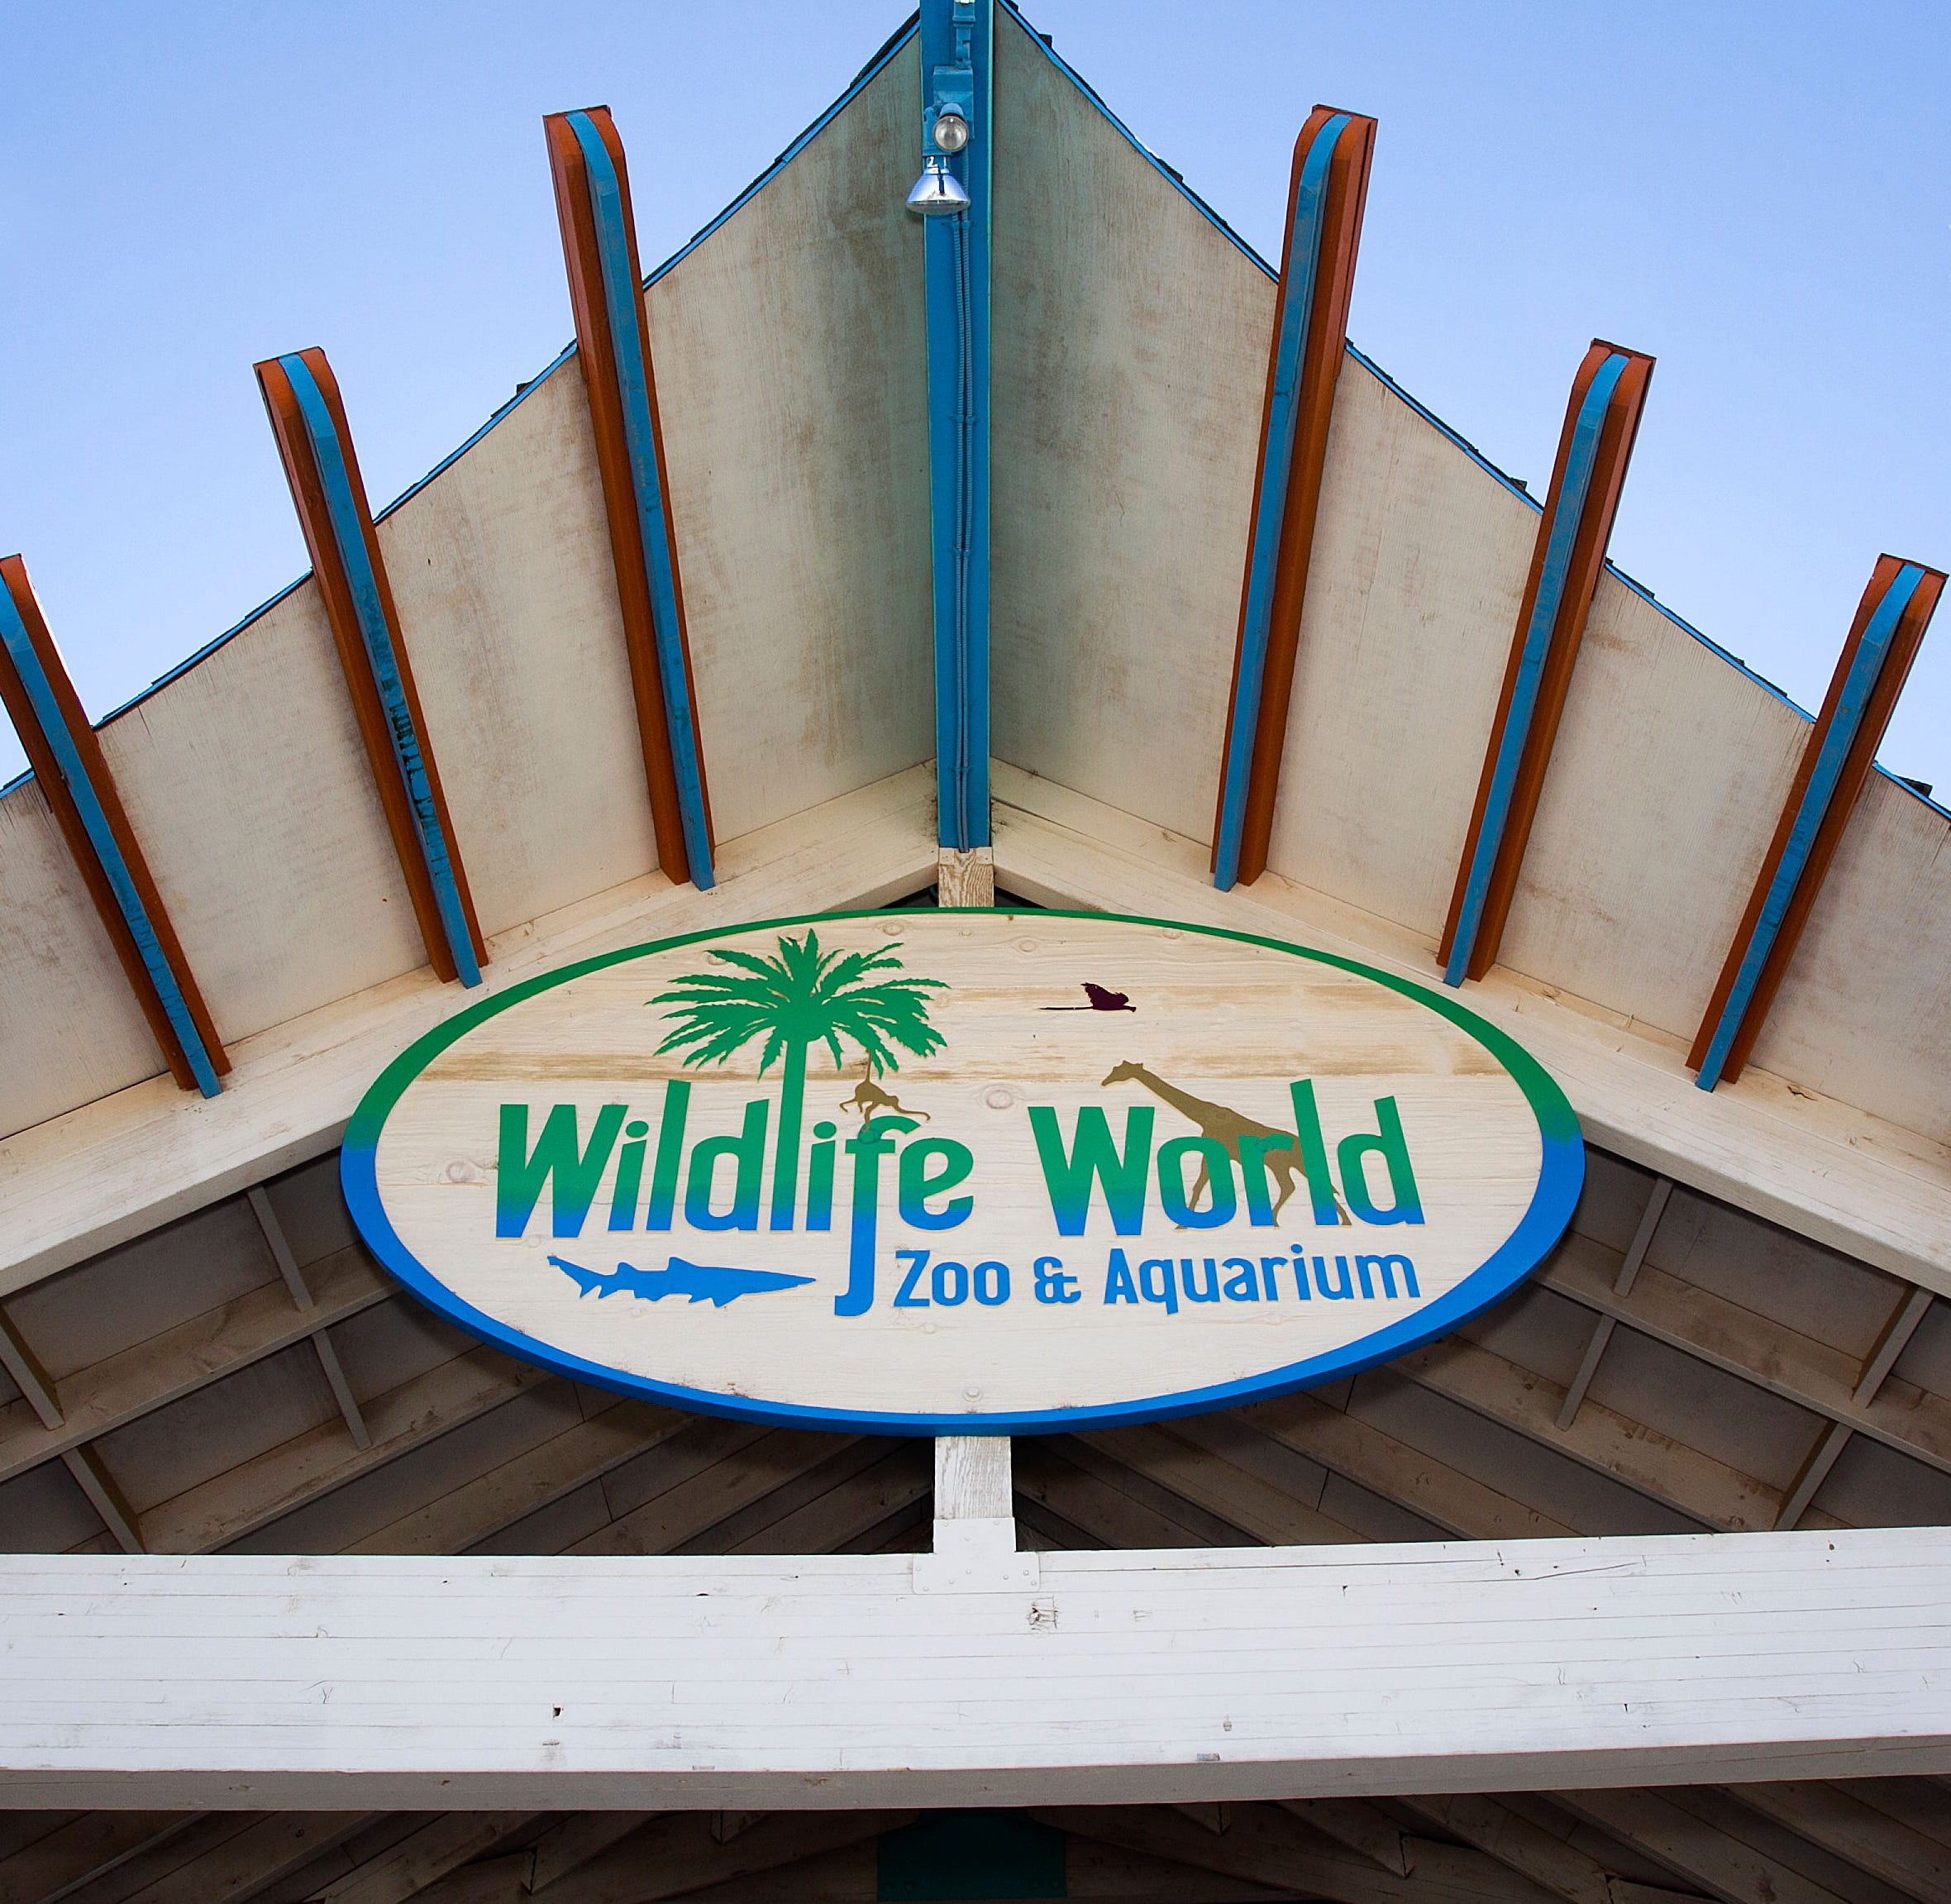 Woman attacked by jaguar while taking photo at Wildlife World Zoo in Litchfield Park